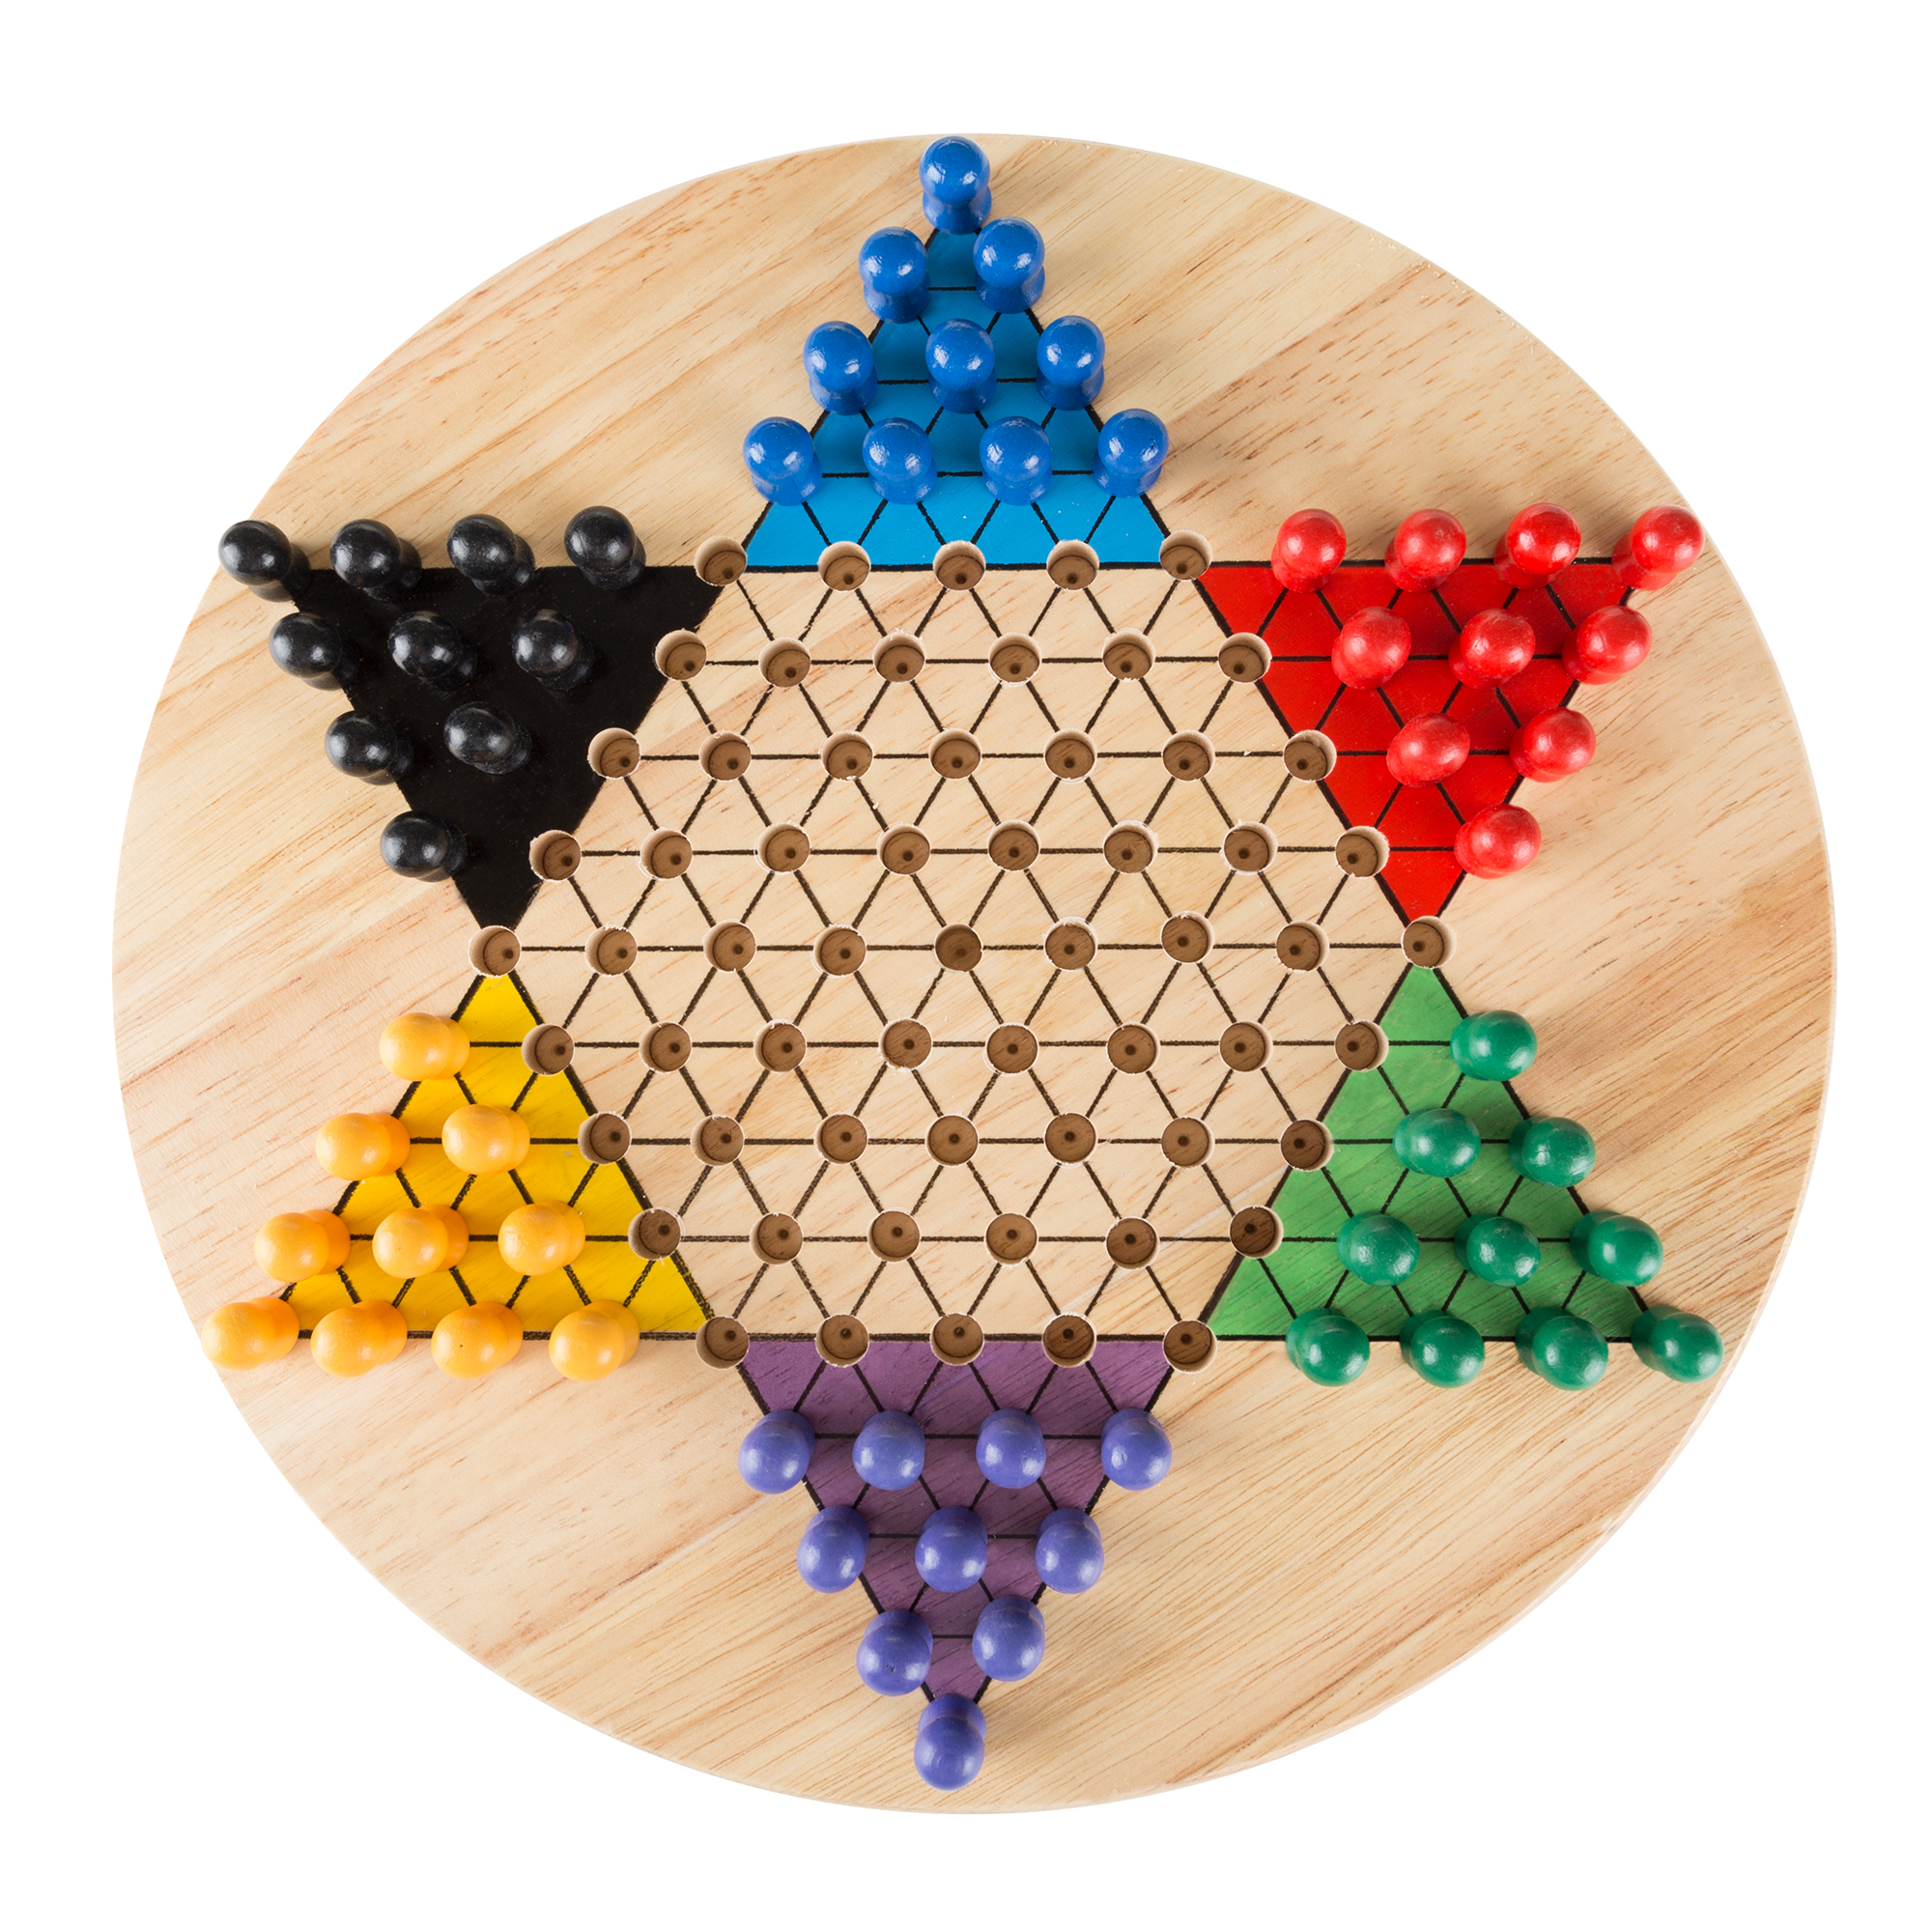 Chinese Checkers Game Set with 11 inch Wooden Board and Traditional Pegs, Game for Adults,... by Trademark Global